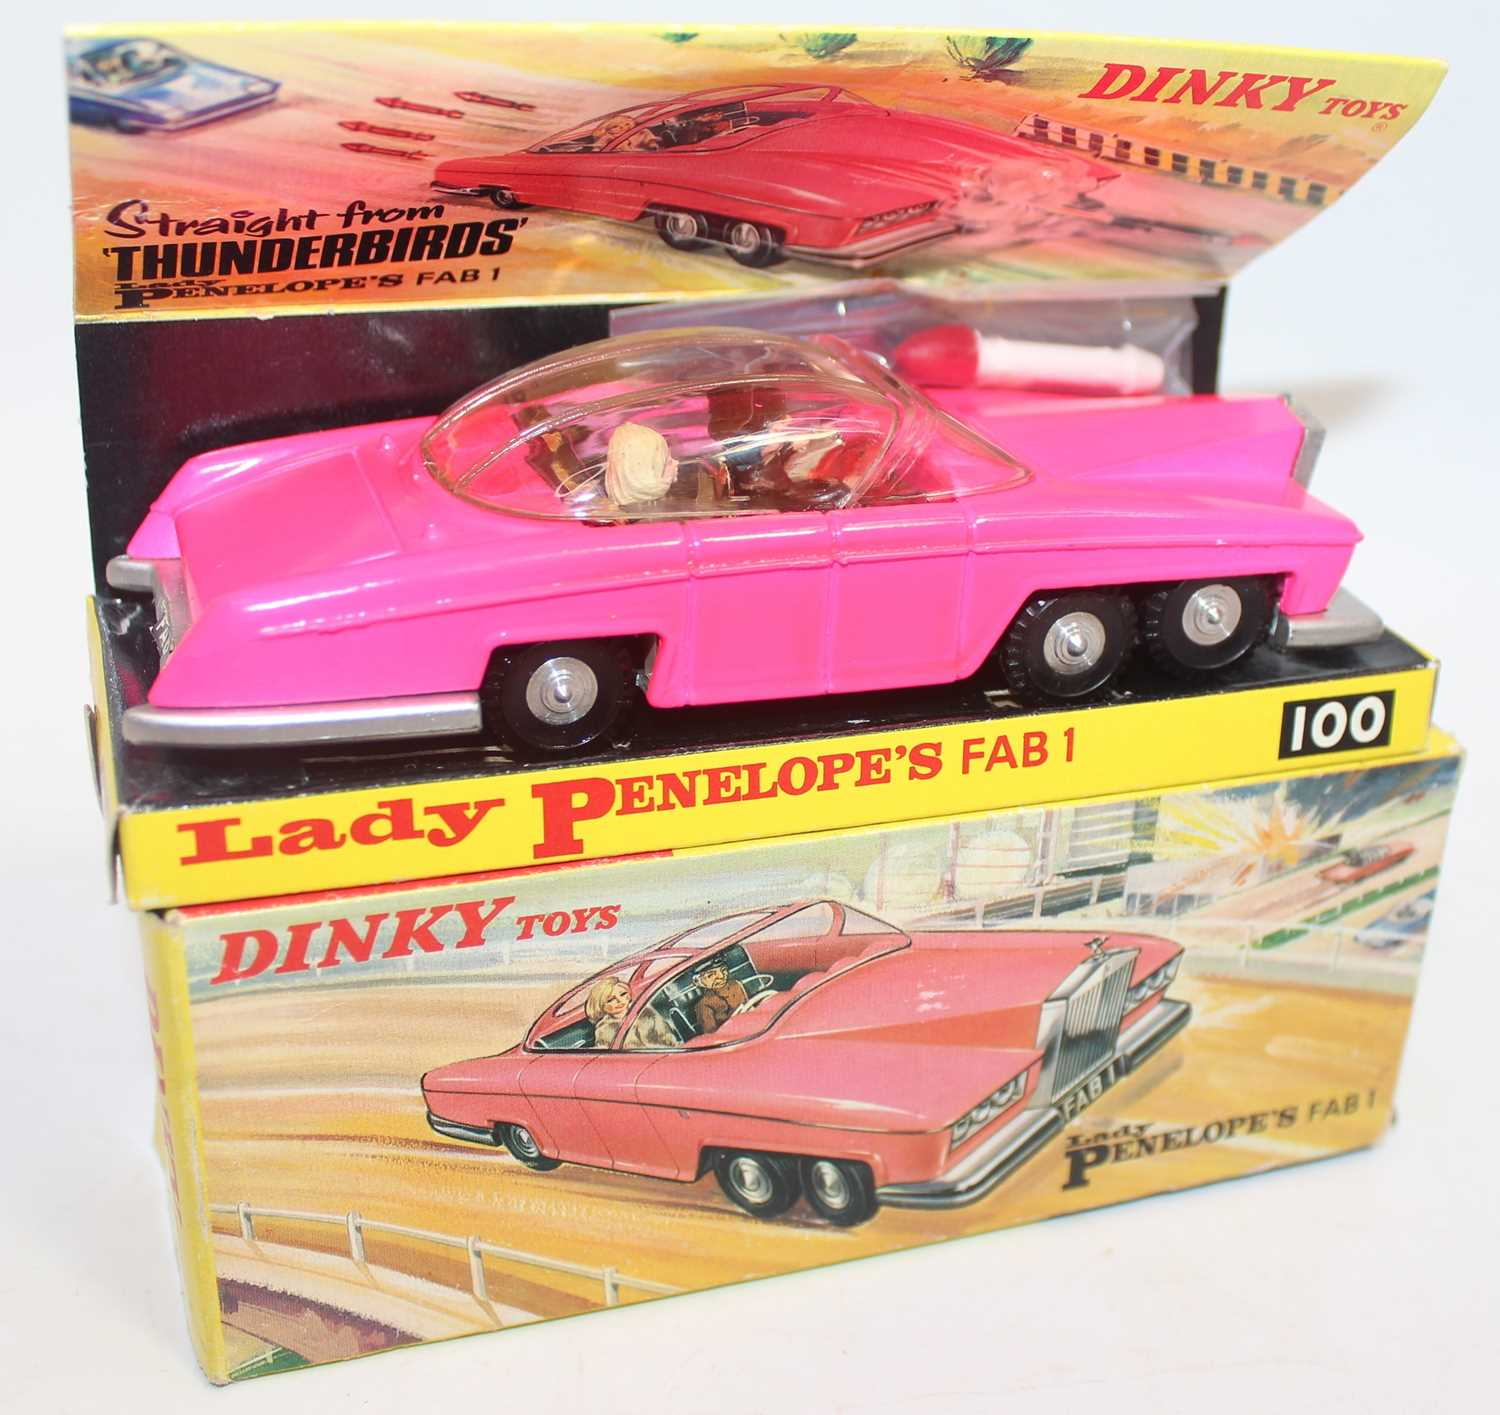 Dinky Toys Boxed 100 Lady Penelopes FAB 1 From TV series 'Thunderbirds' in the rarer fluorescent - Image 2 of 7